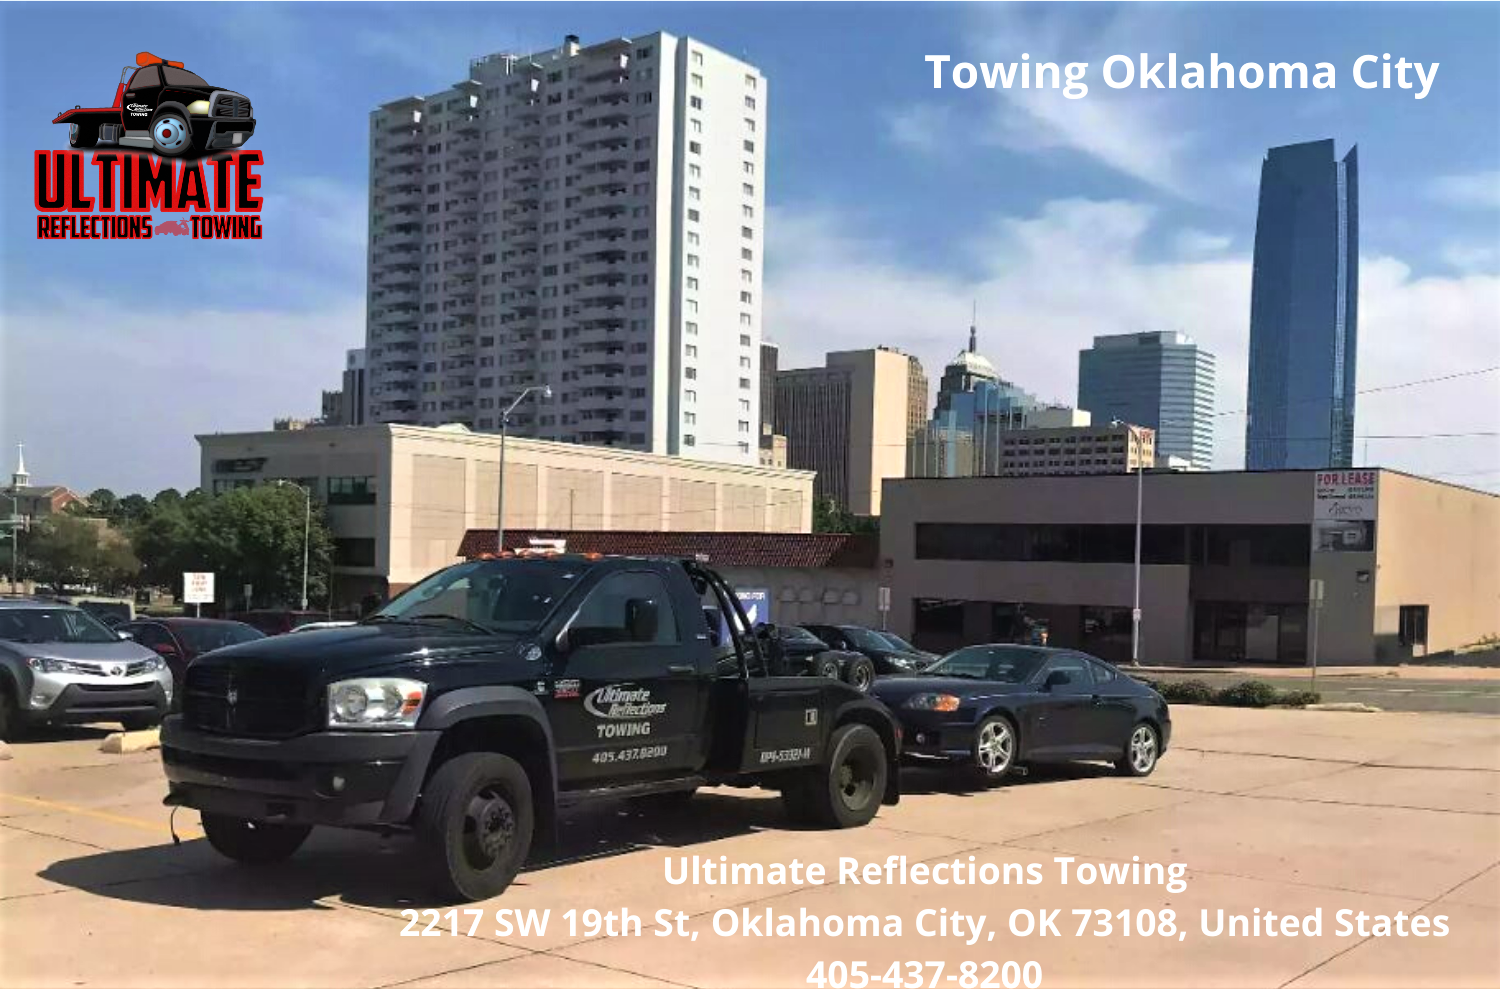 Ultimate Reflections Towing LLC Extends Towing Service Area to Edmond, Oklahoma